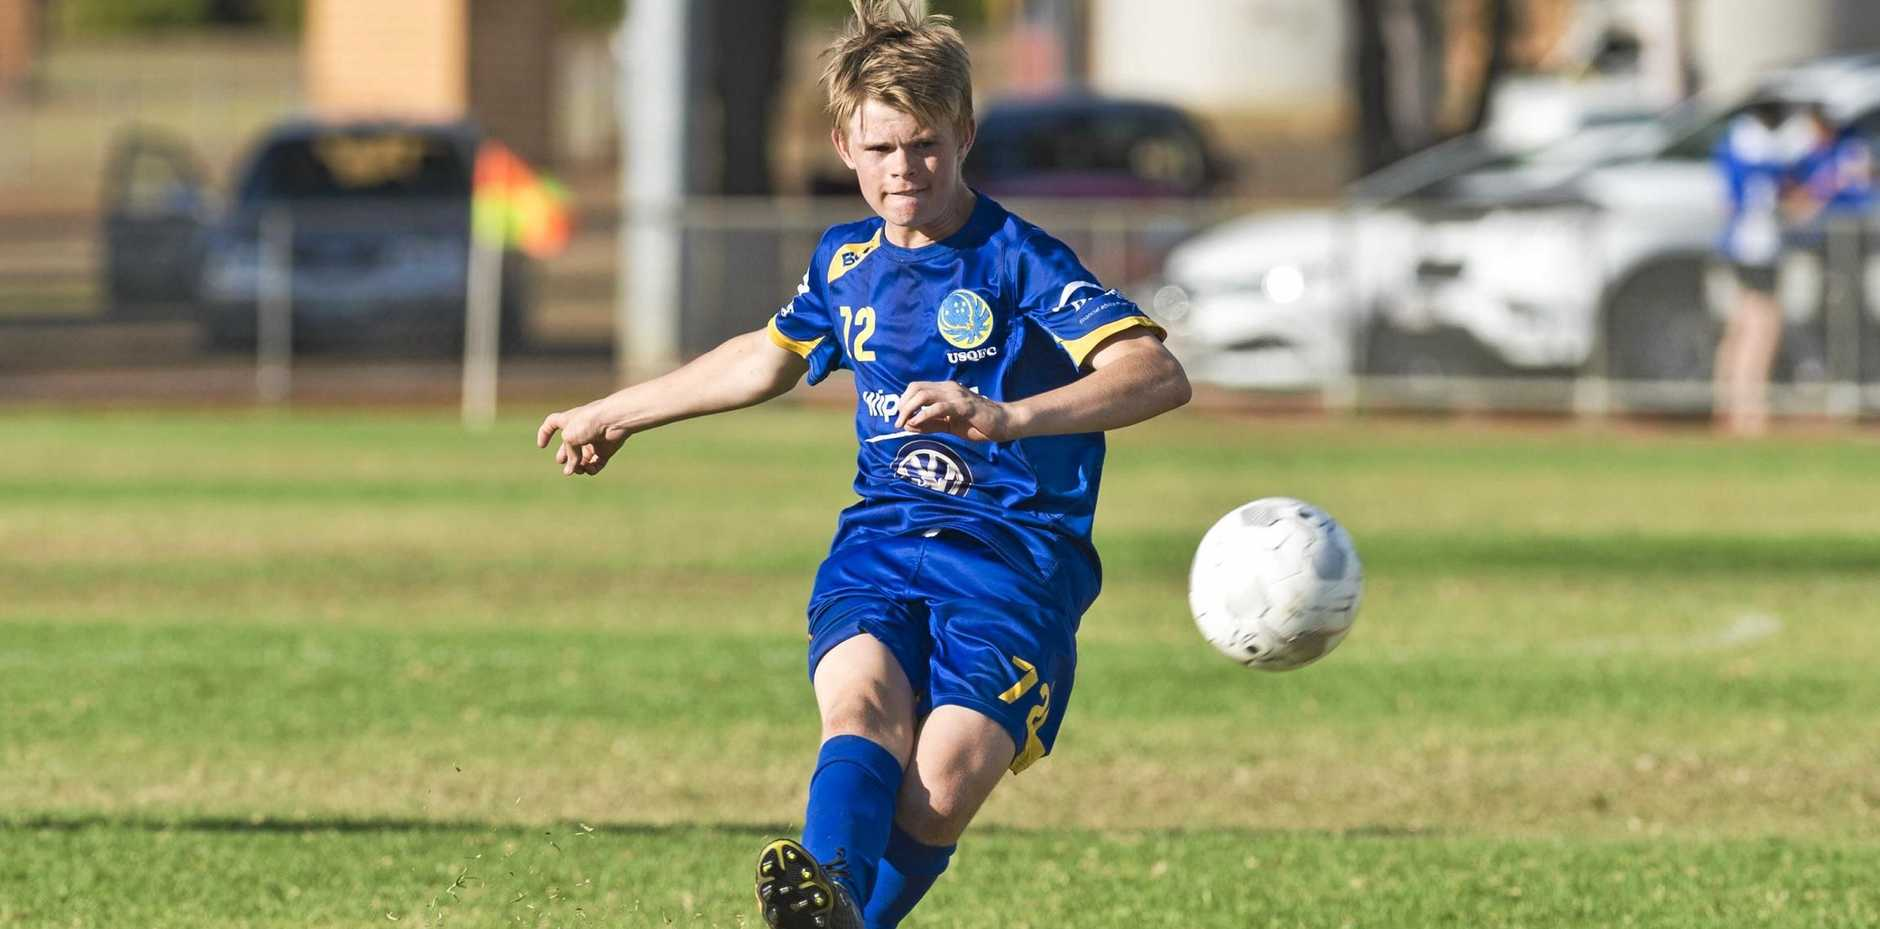 GOOD STRIKE: Striker Dylan Proctor puts one on target during his side's Toowoomba Football League premier men's game against Rockville. The 15-year-old USQ striker scored a hat-trick in the team's 5-1 win.